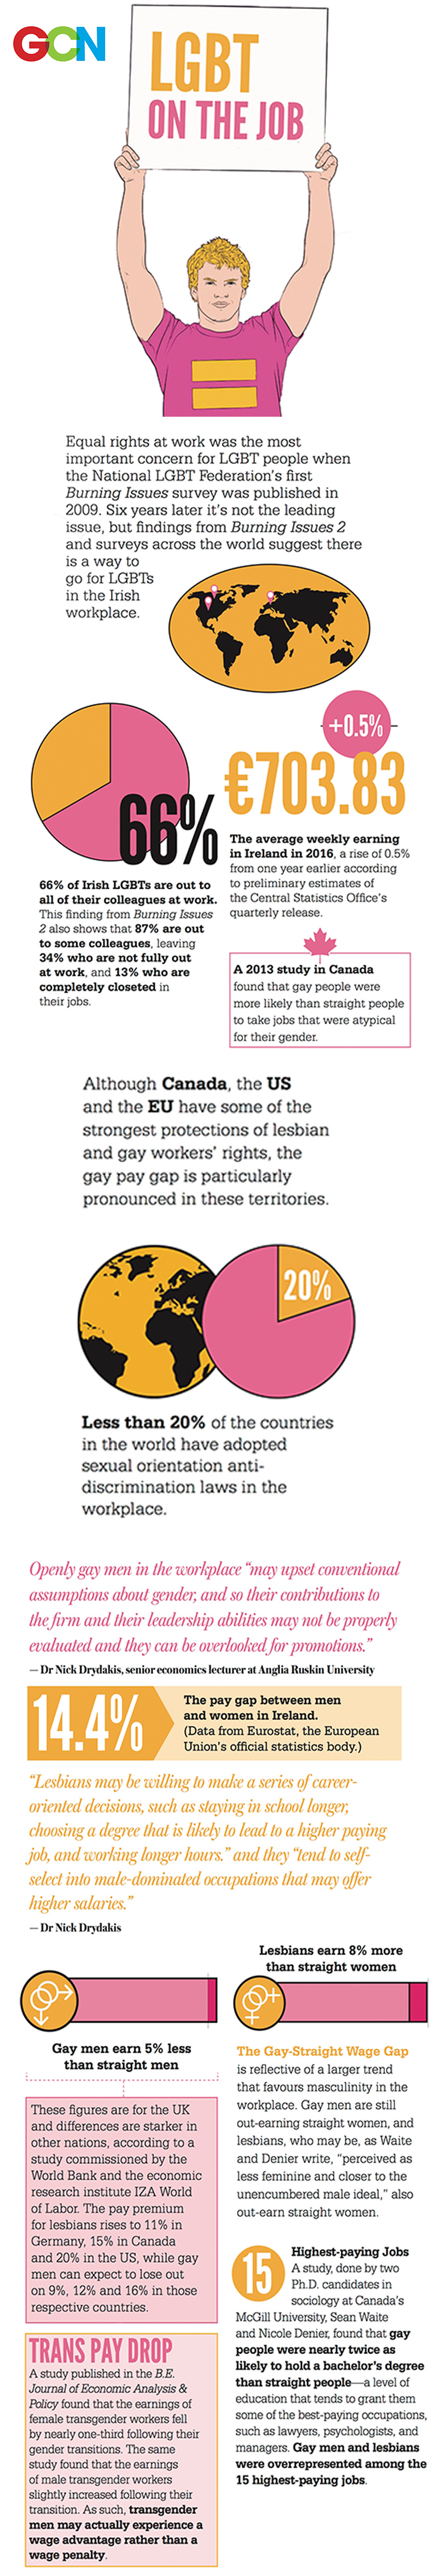 An infographic of being LGBT on the job